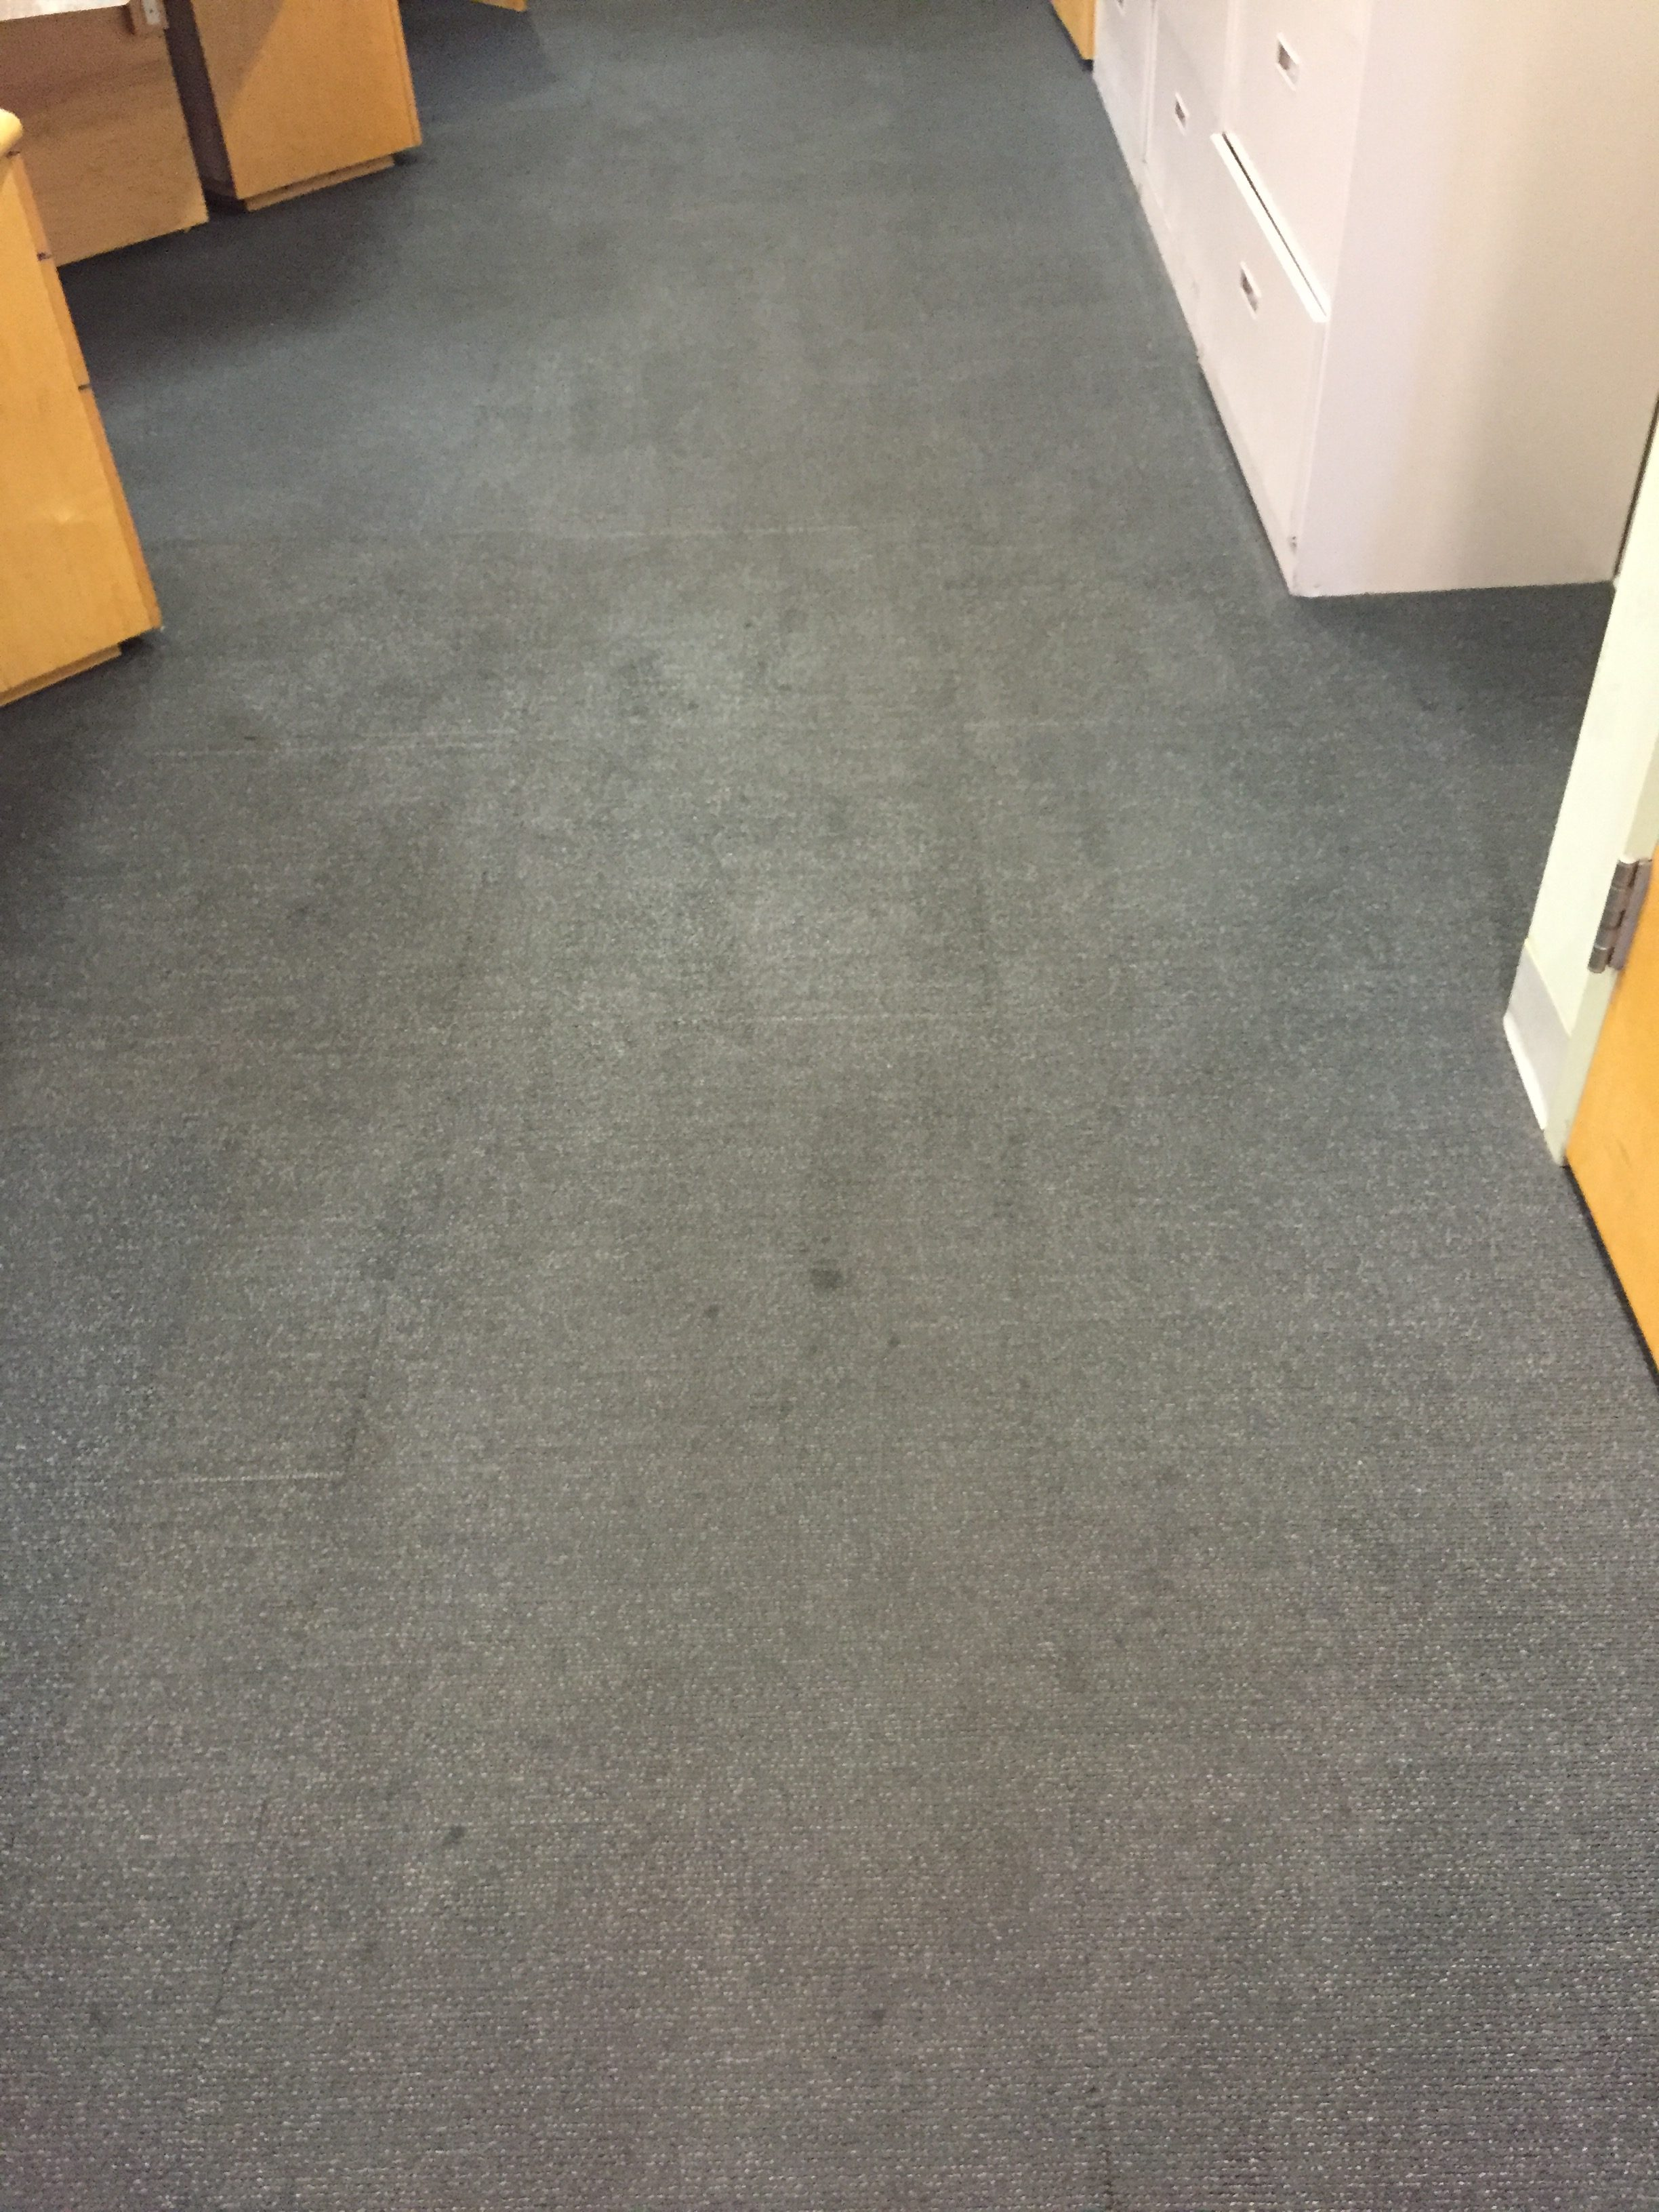 Office Carpet Cleaning – Before